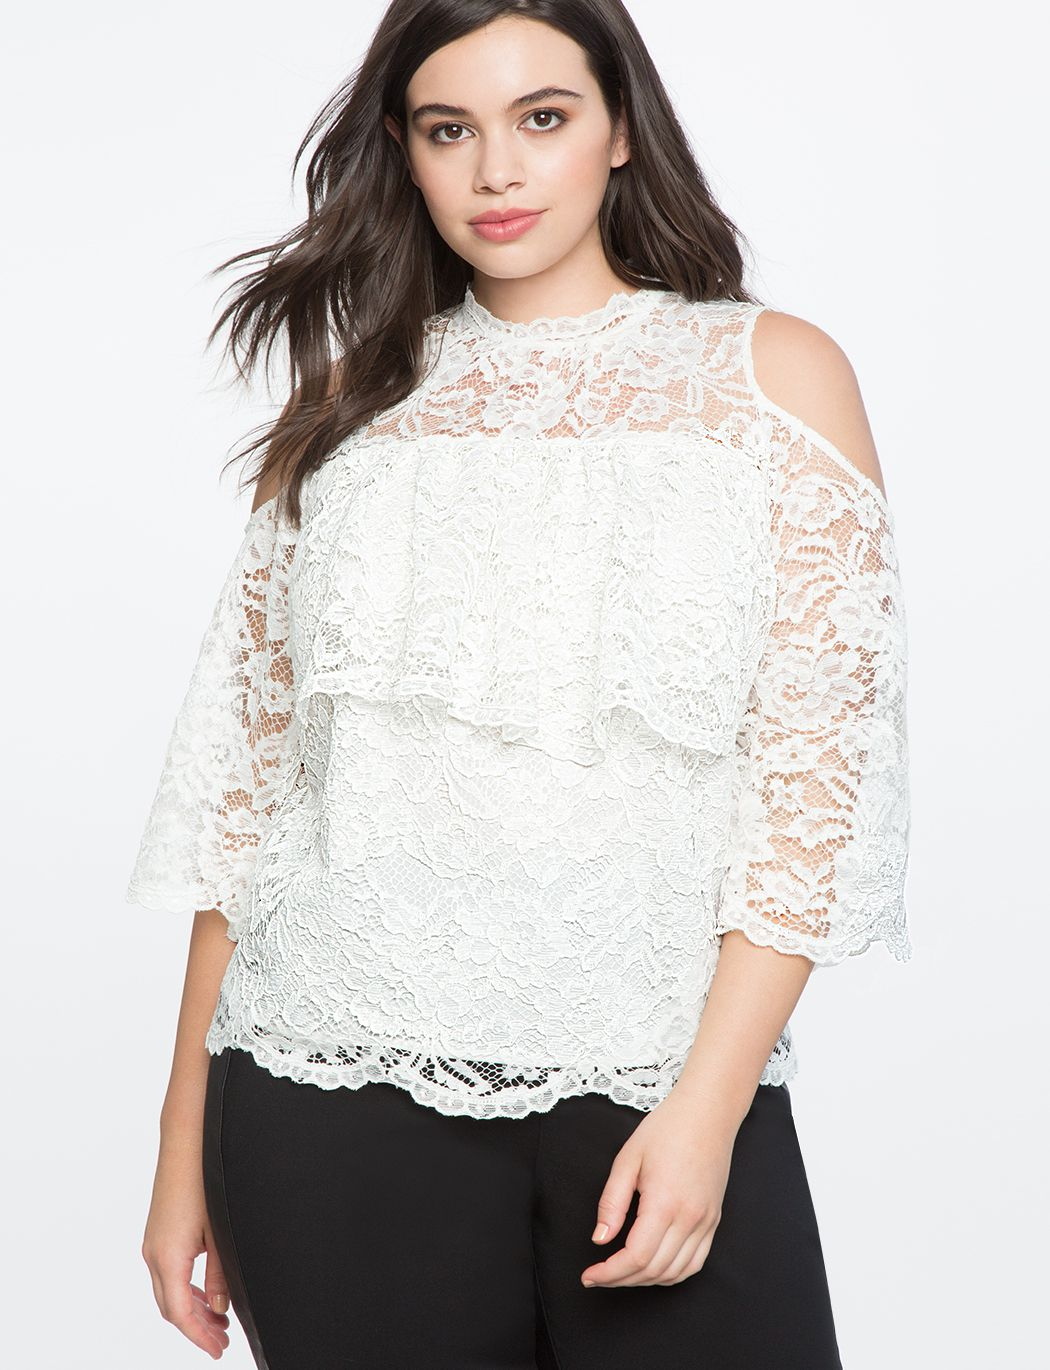 d1e9d022971b Lace Cold Shoulder Overlay Top | Women's Plus Size Tops in 2019 ...